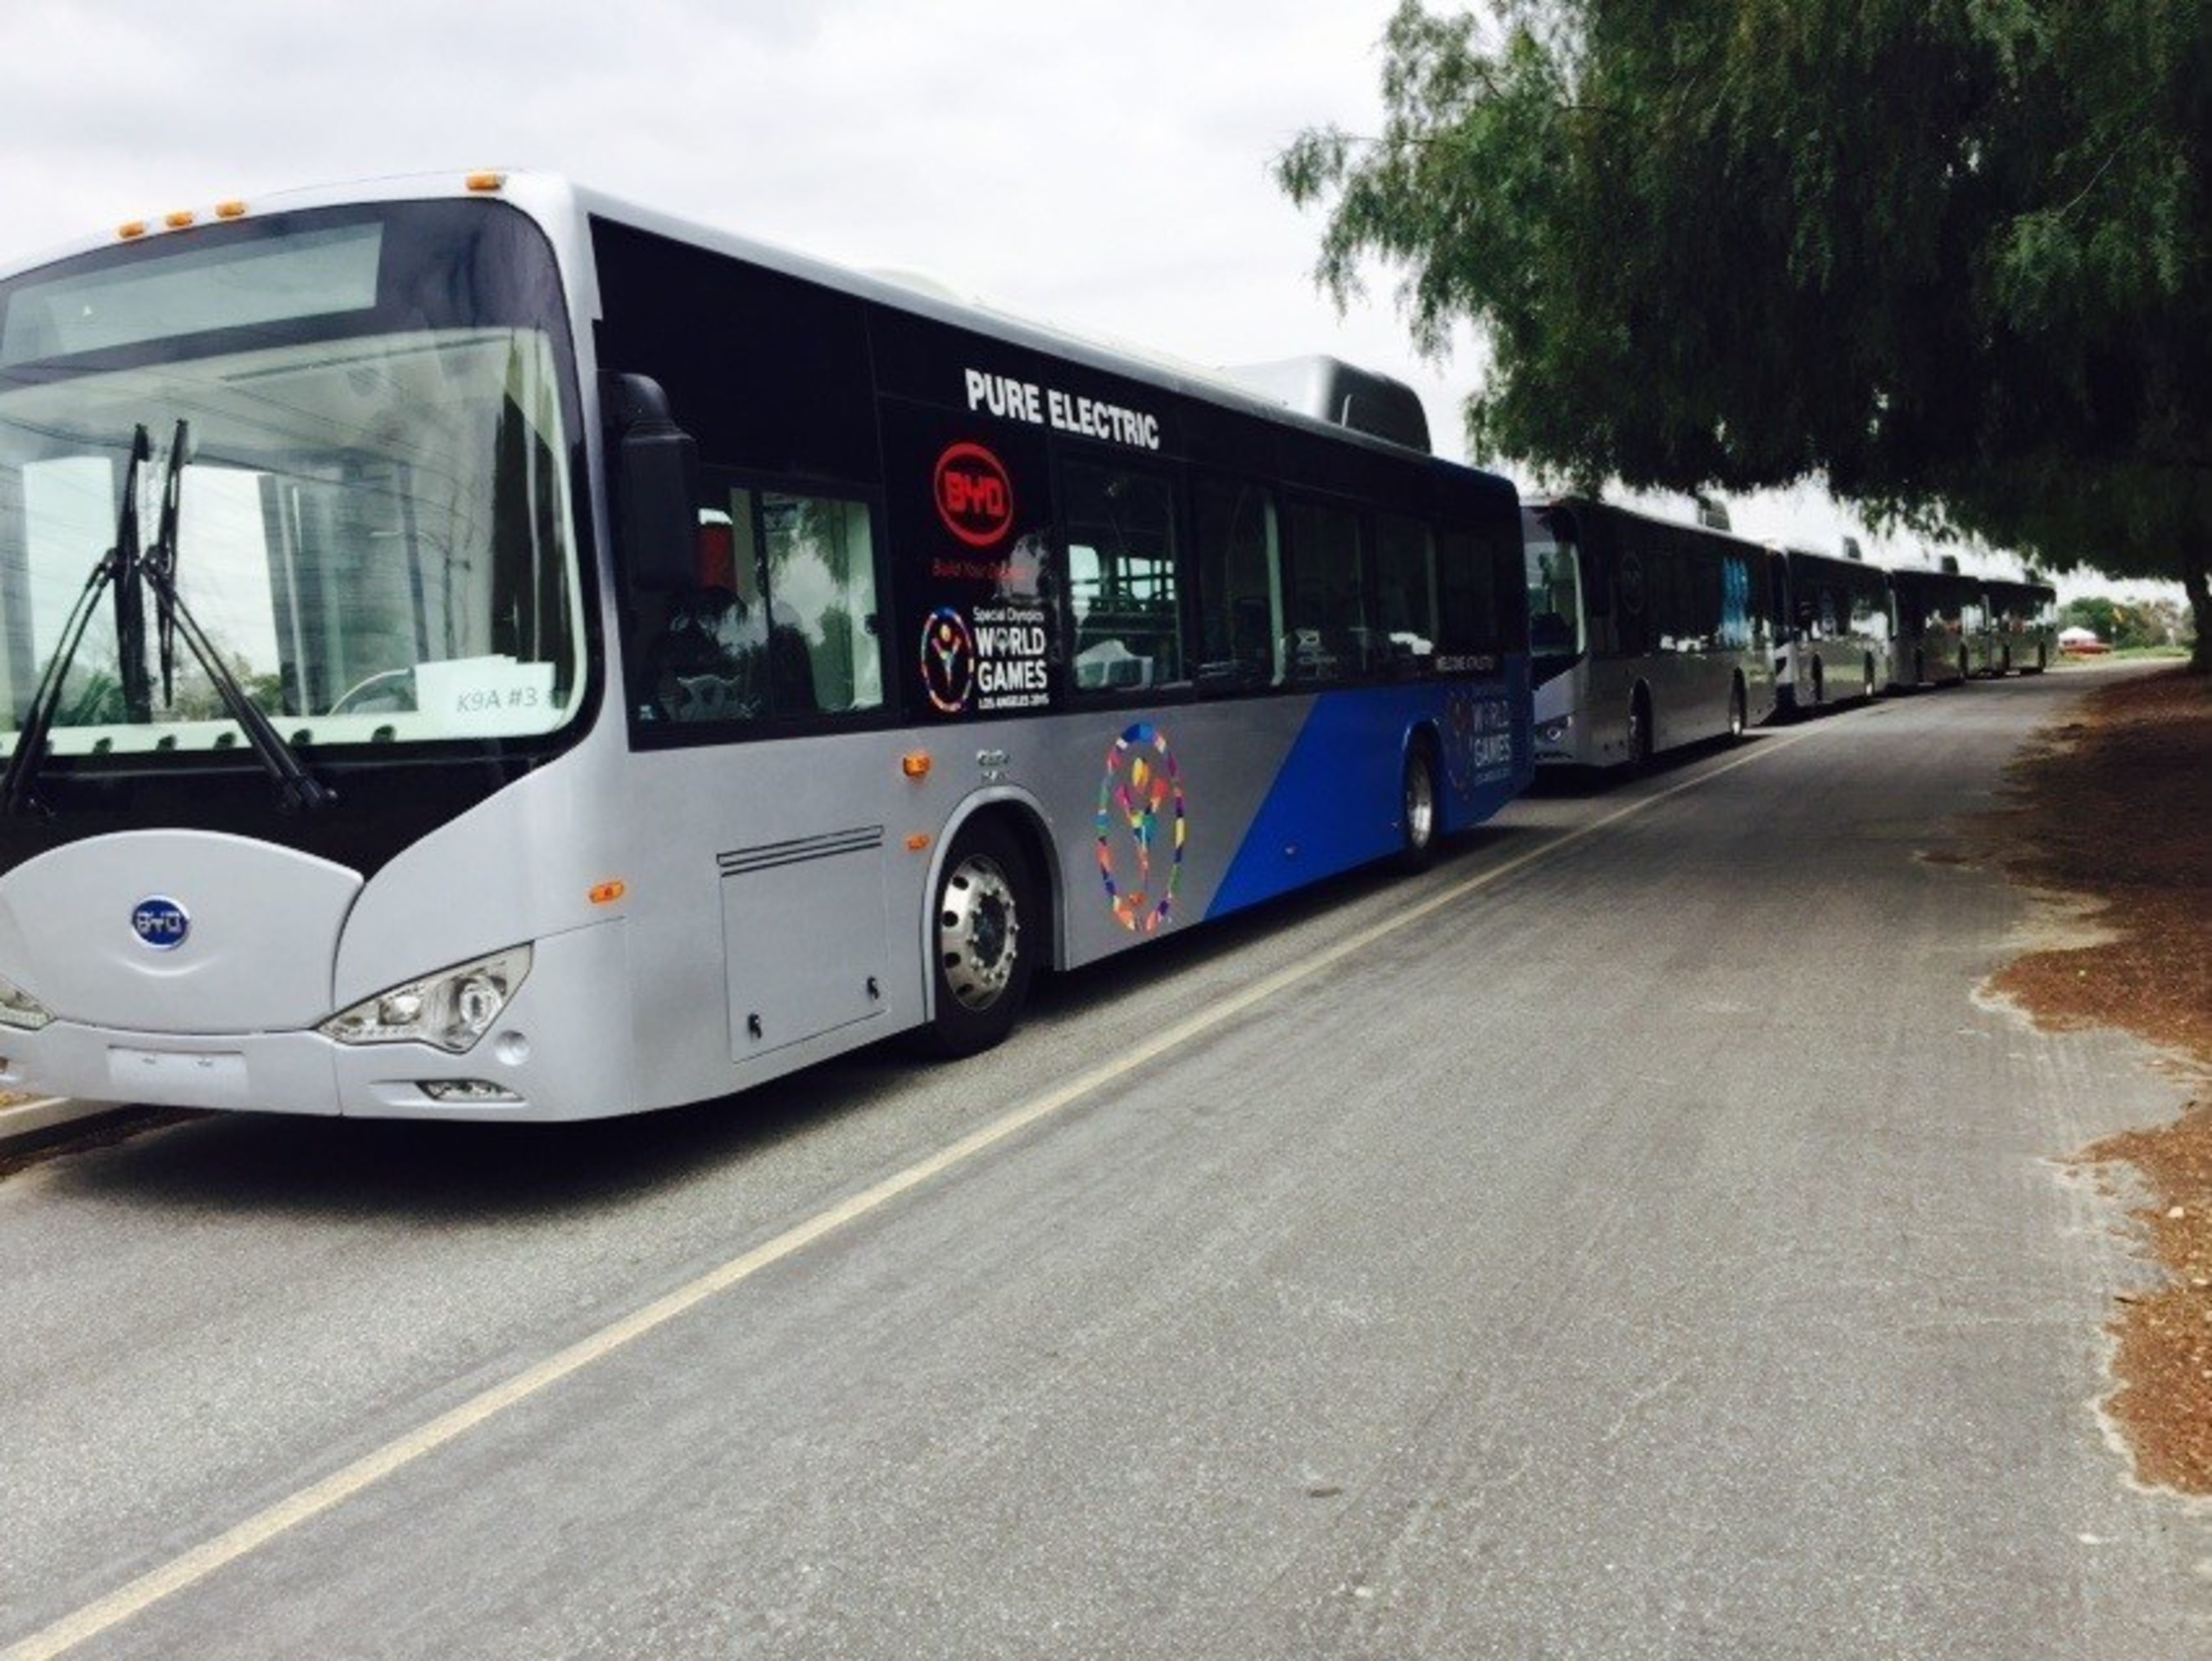 BYD Zero-Emission Buses Used to Transport Athletes at 2015 World Games